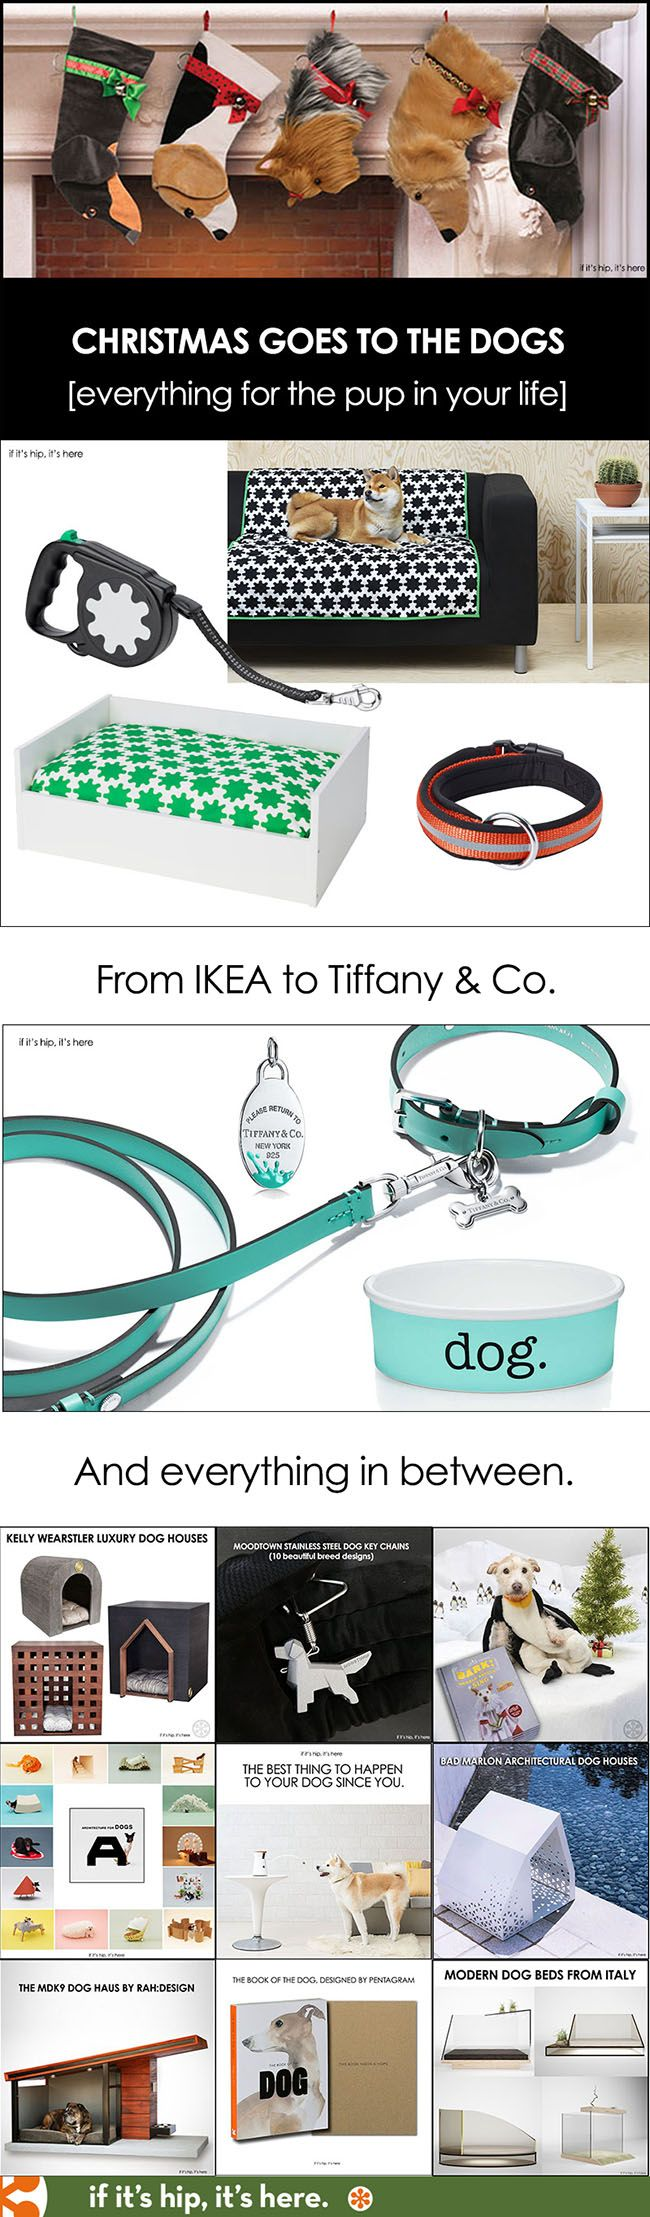 Check out over 200 fabulous gift ideas for dogs and dog-lovers #Tiffanyandcopets #doggifts #IKEAdog #christmasgiftguide